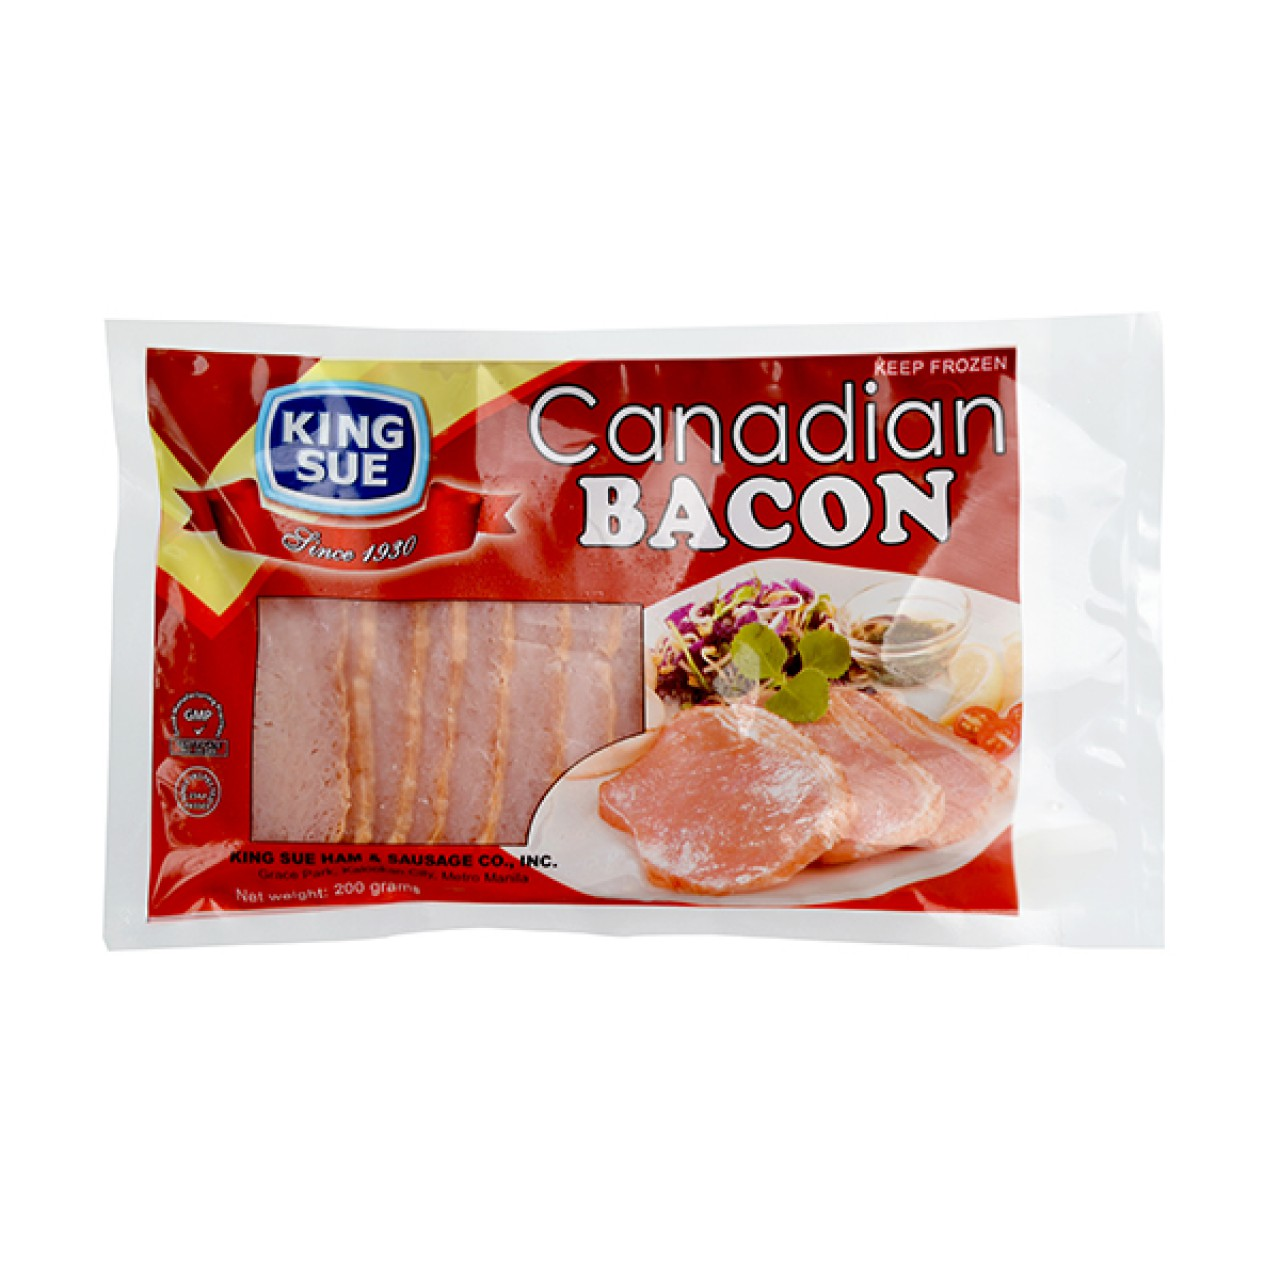 KING SUE CANADIAN BACON 200G